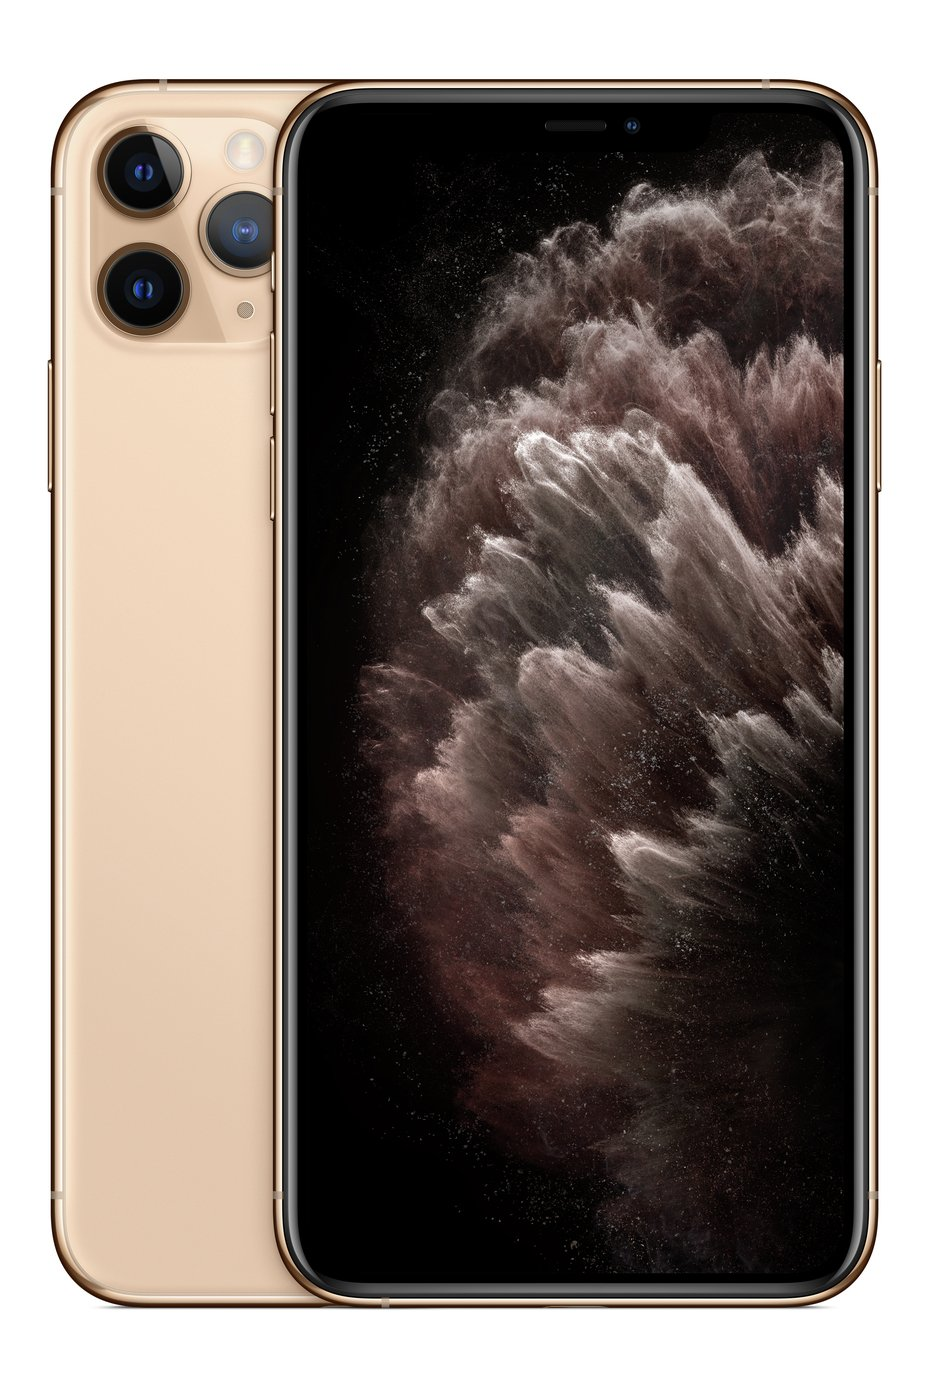 SIM Free iPhone 11 Pro Max 256GB Mobile Phone - Gold